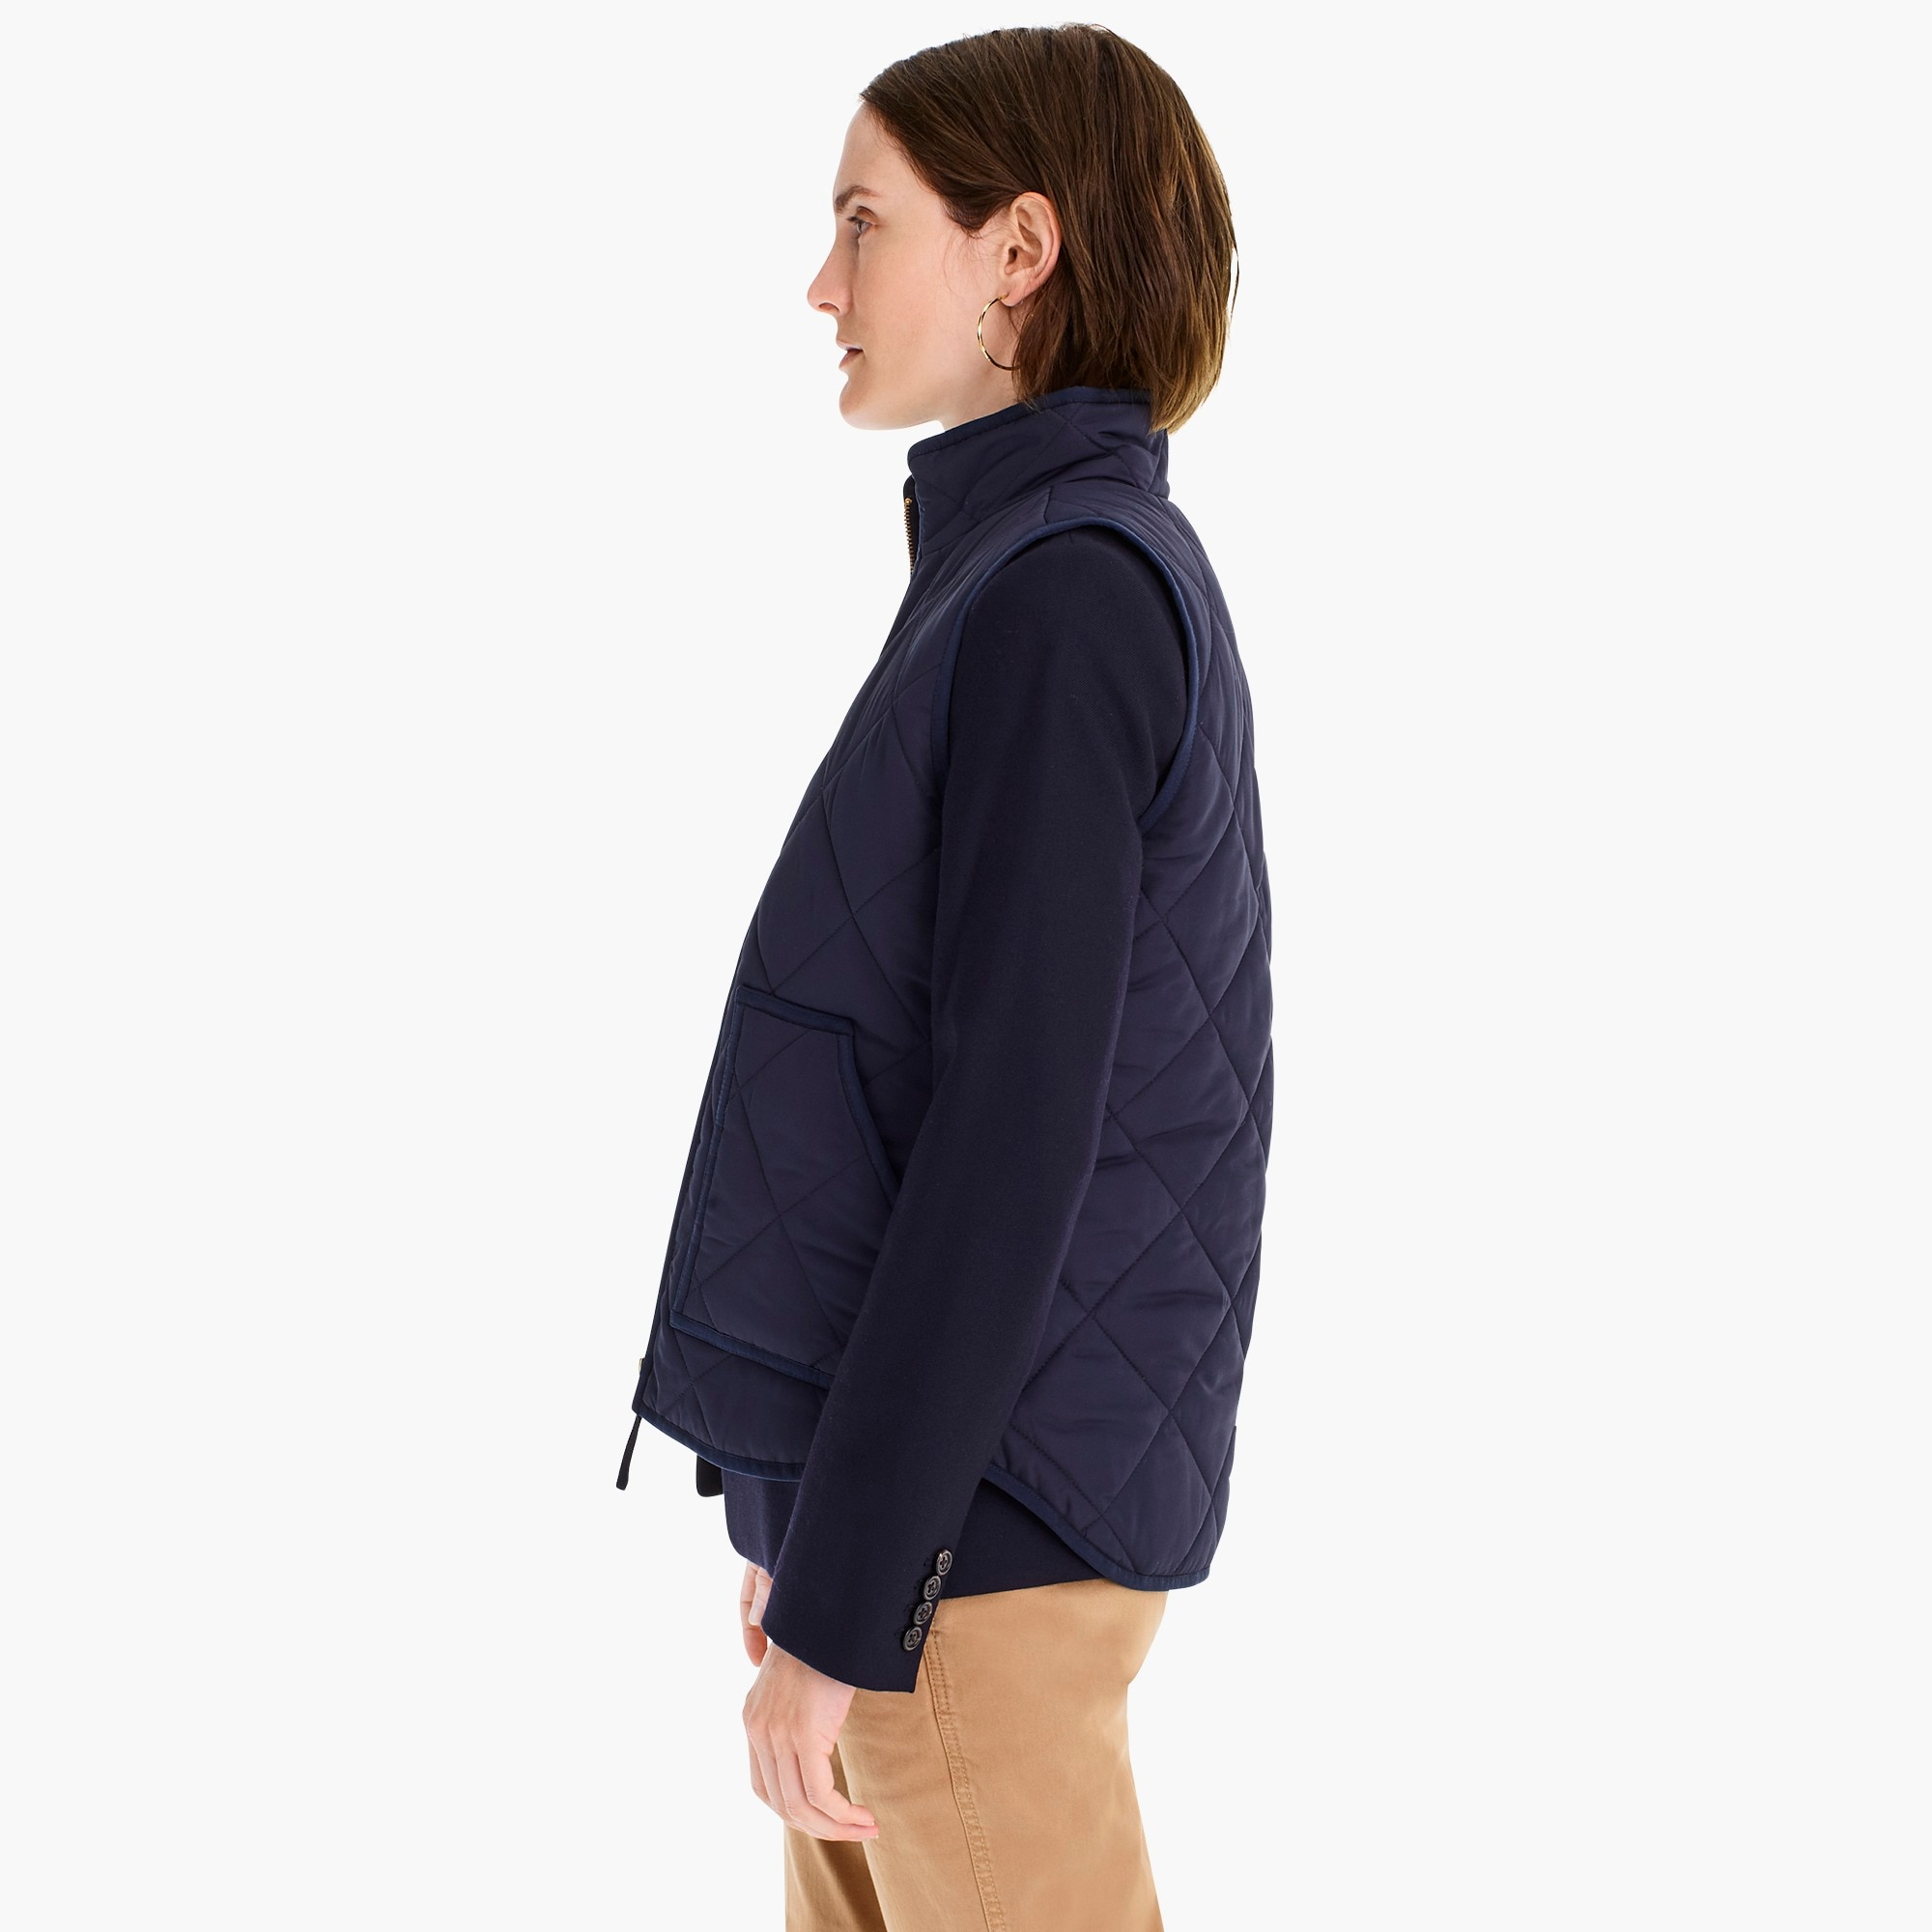 Image 5 for J.Crew Mercantile quilted puffer vest